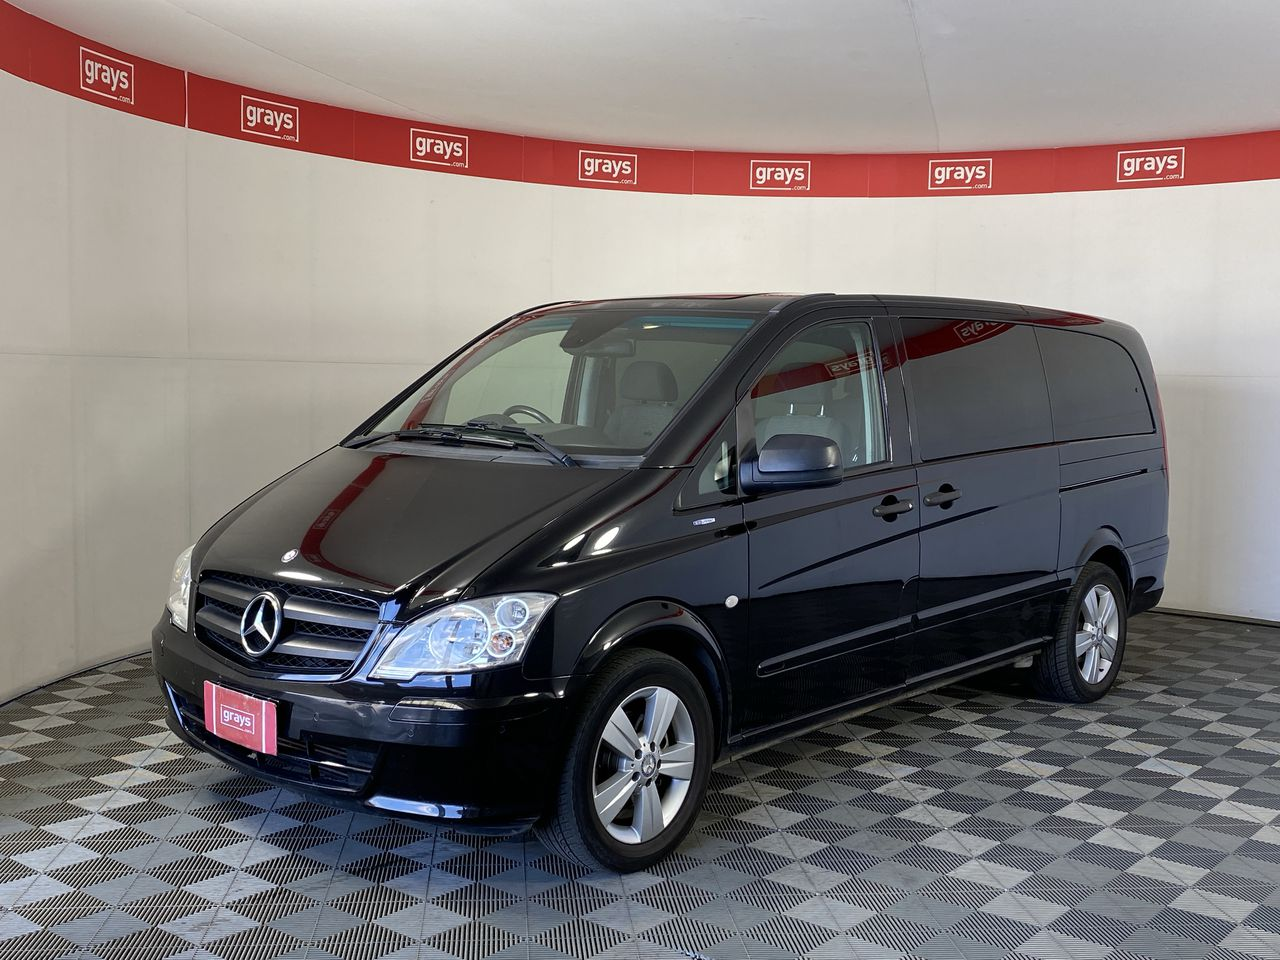 Mercedes Benz VALENTE Turbo Diesel Automatic 8 Seats People Mover